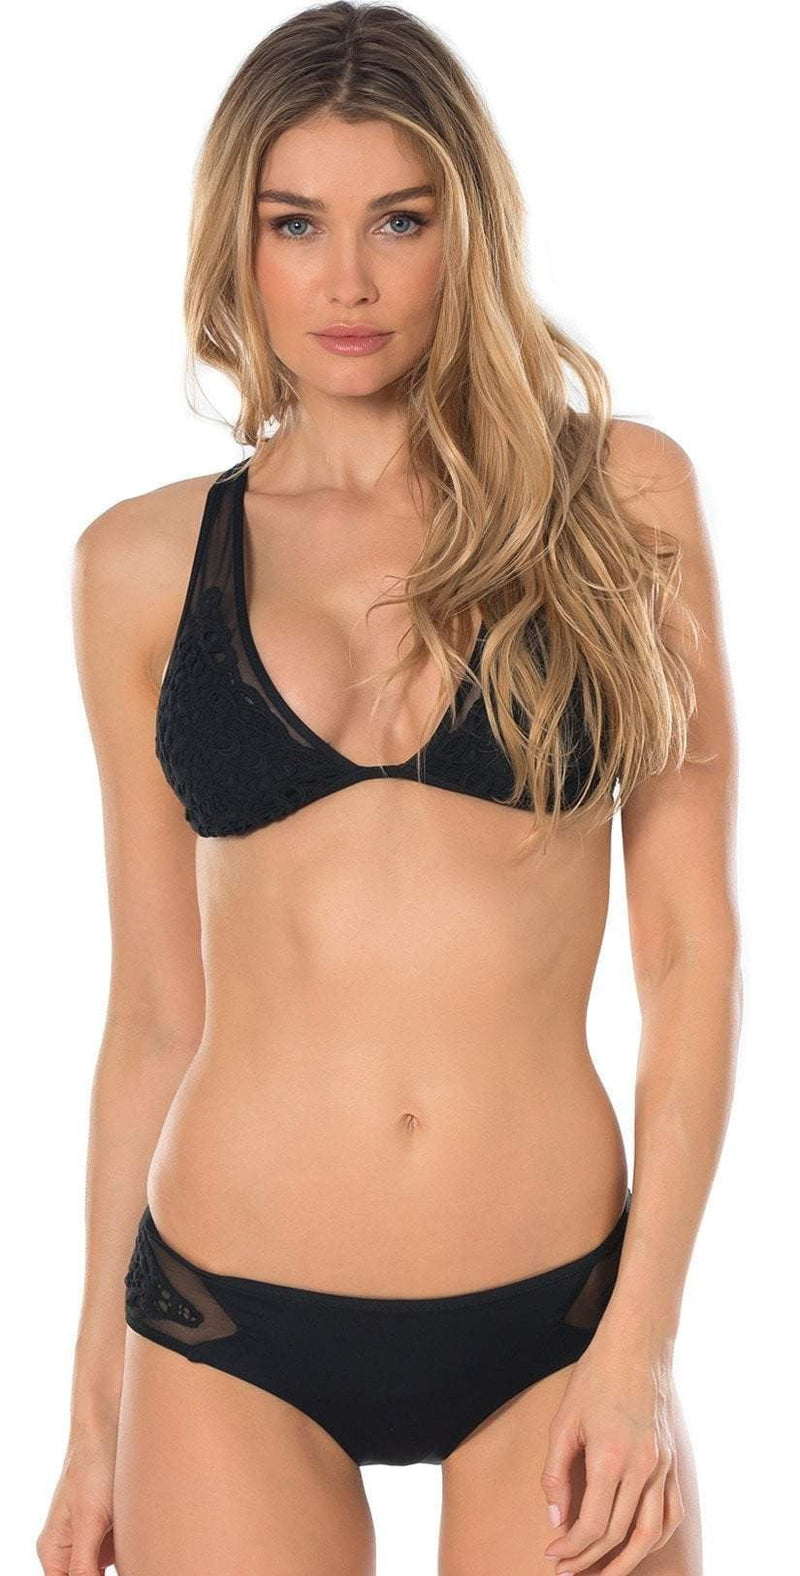 Becca Sicily Sheer Hipster Bottom in Black 444477-BLK: